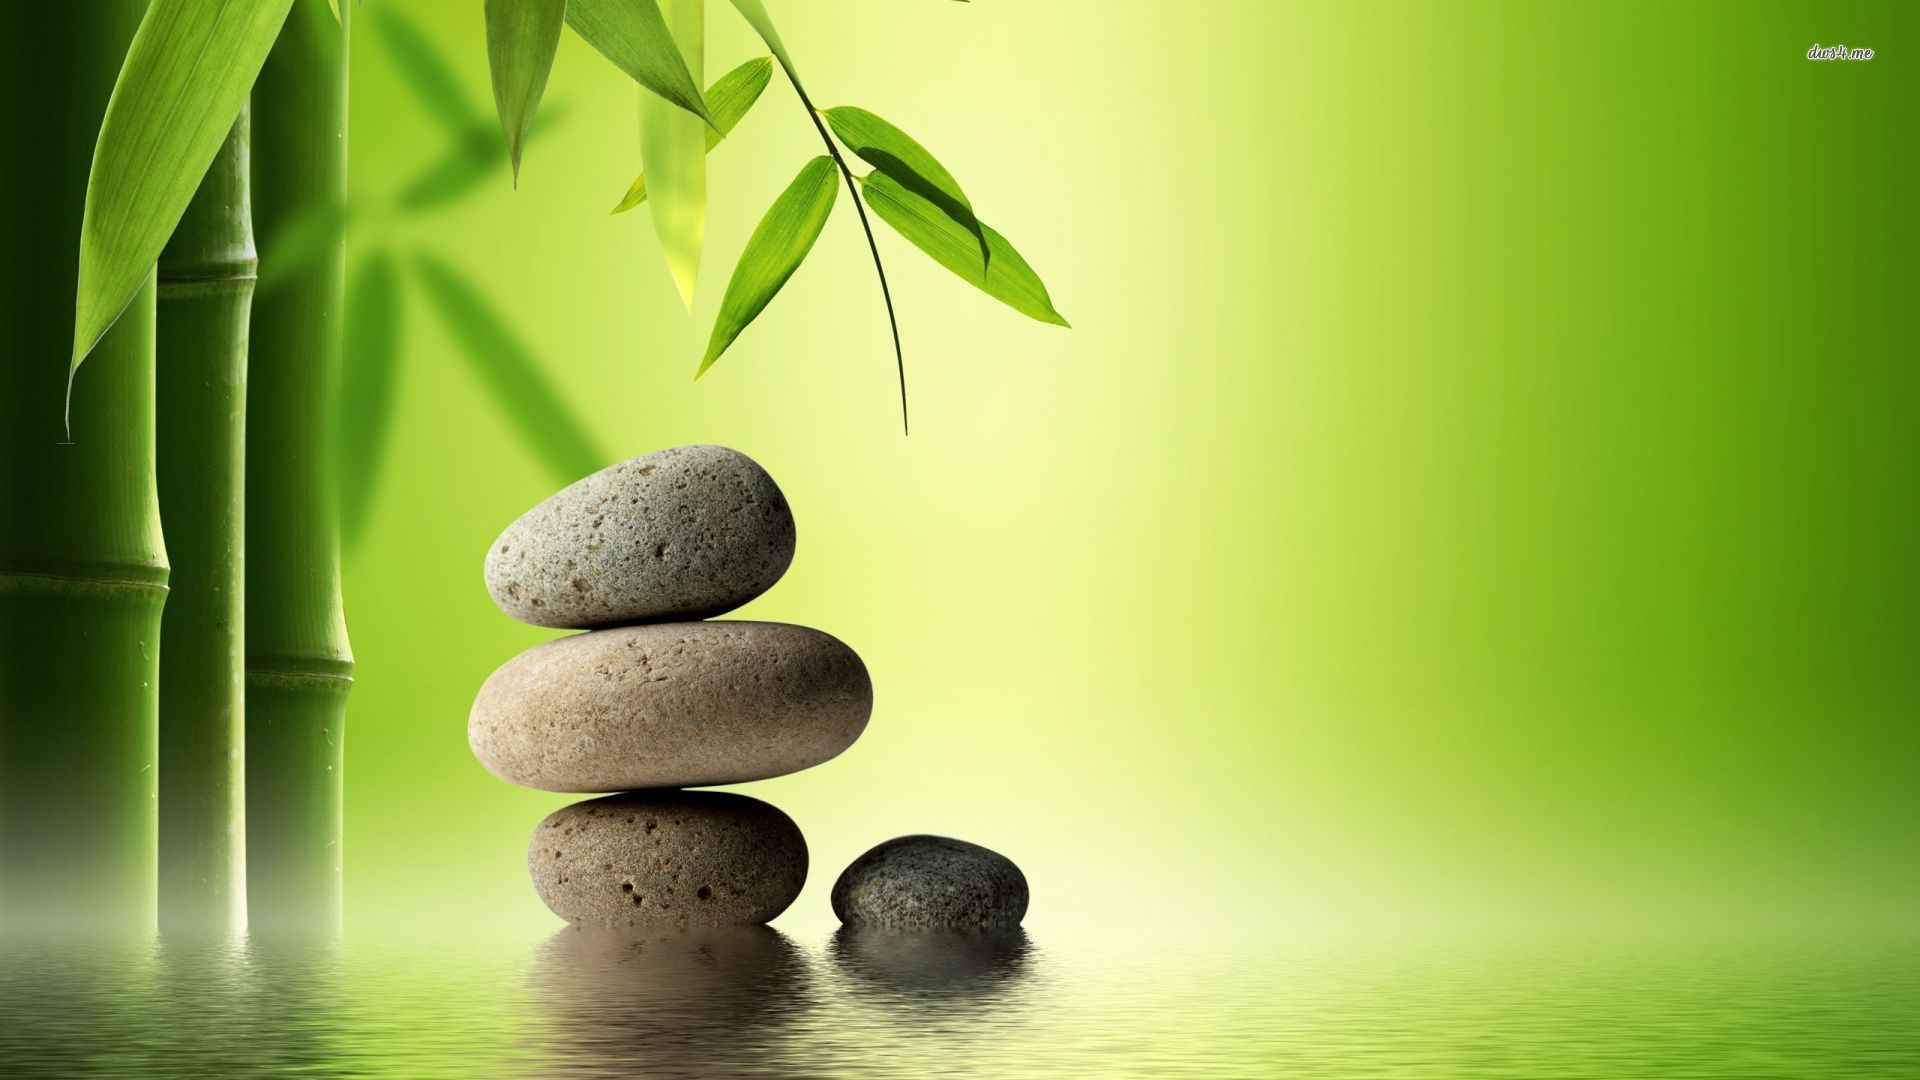 bamboo zen stone wallpaper high resolution wallpaper full size